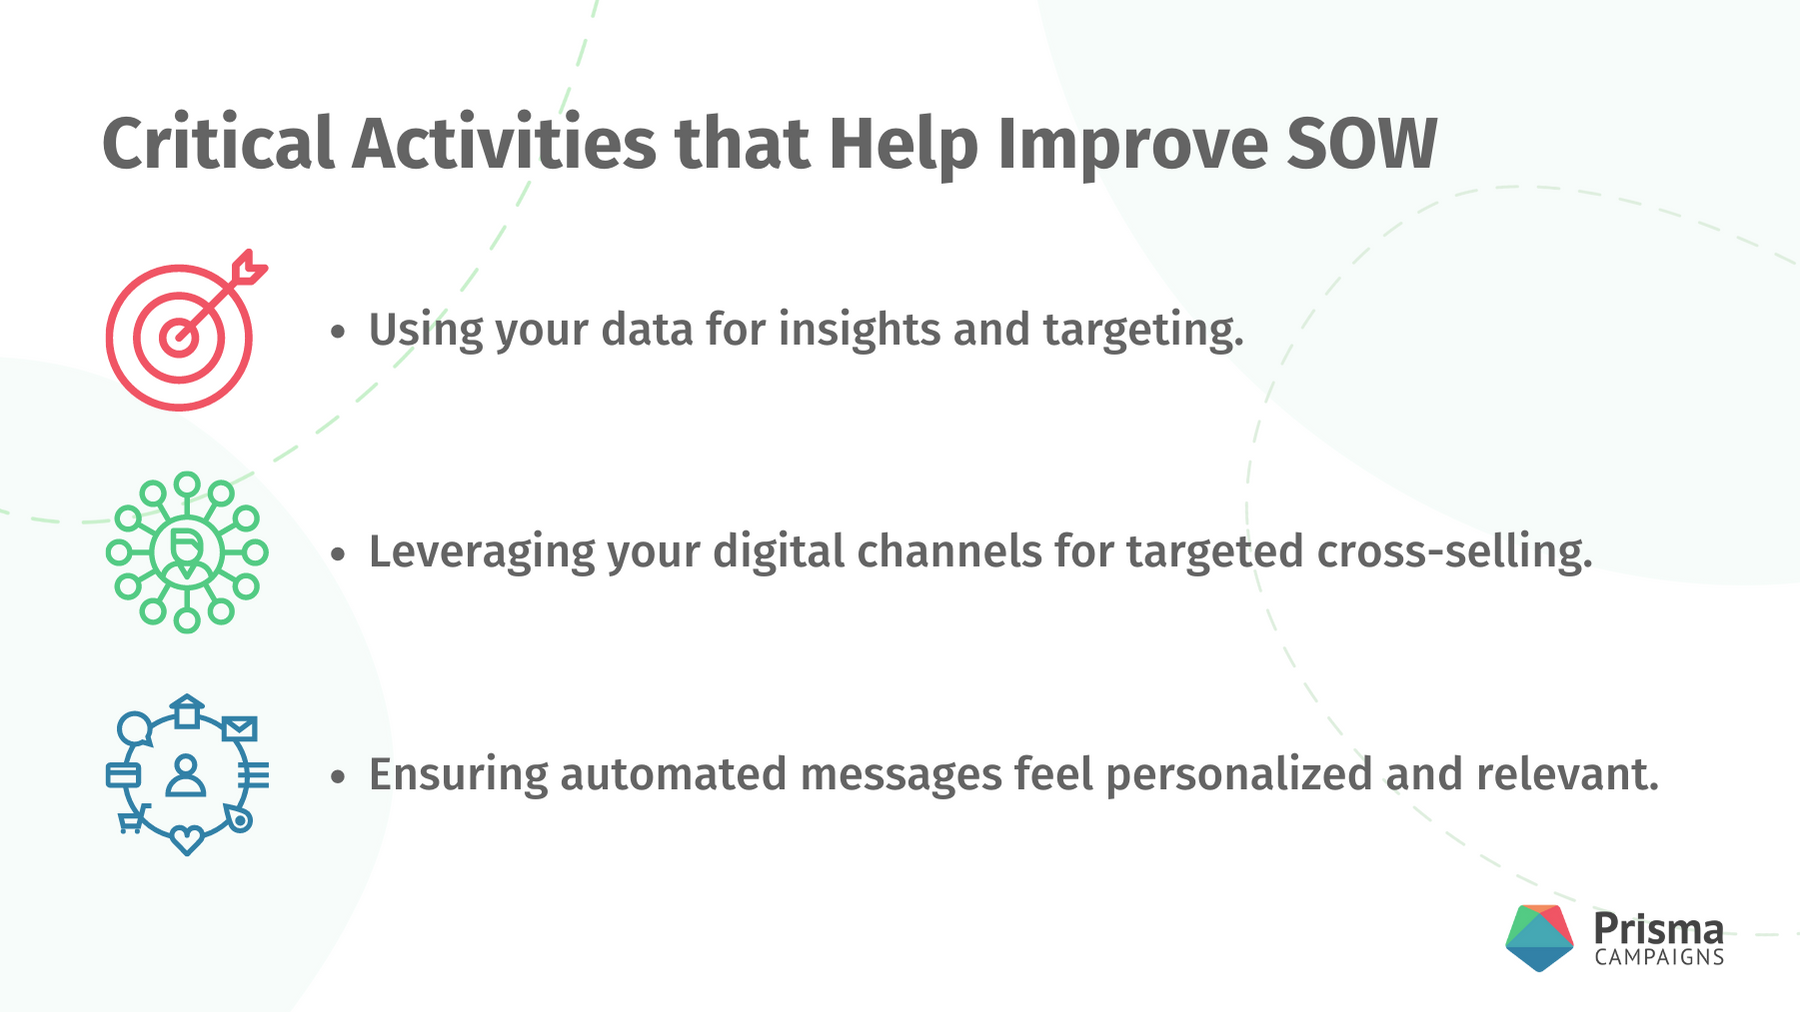 Critical Activities that Help Improve SOW